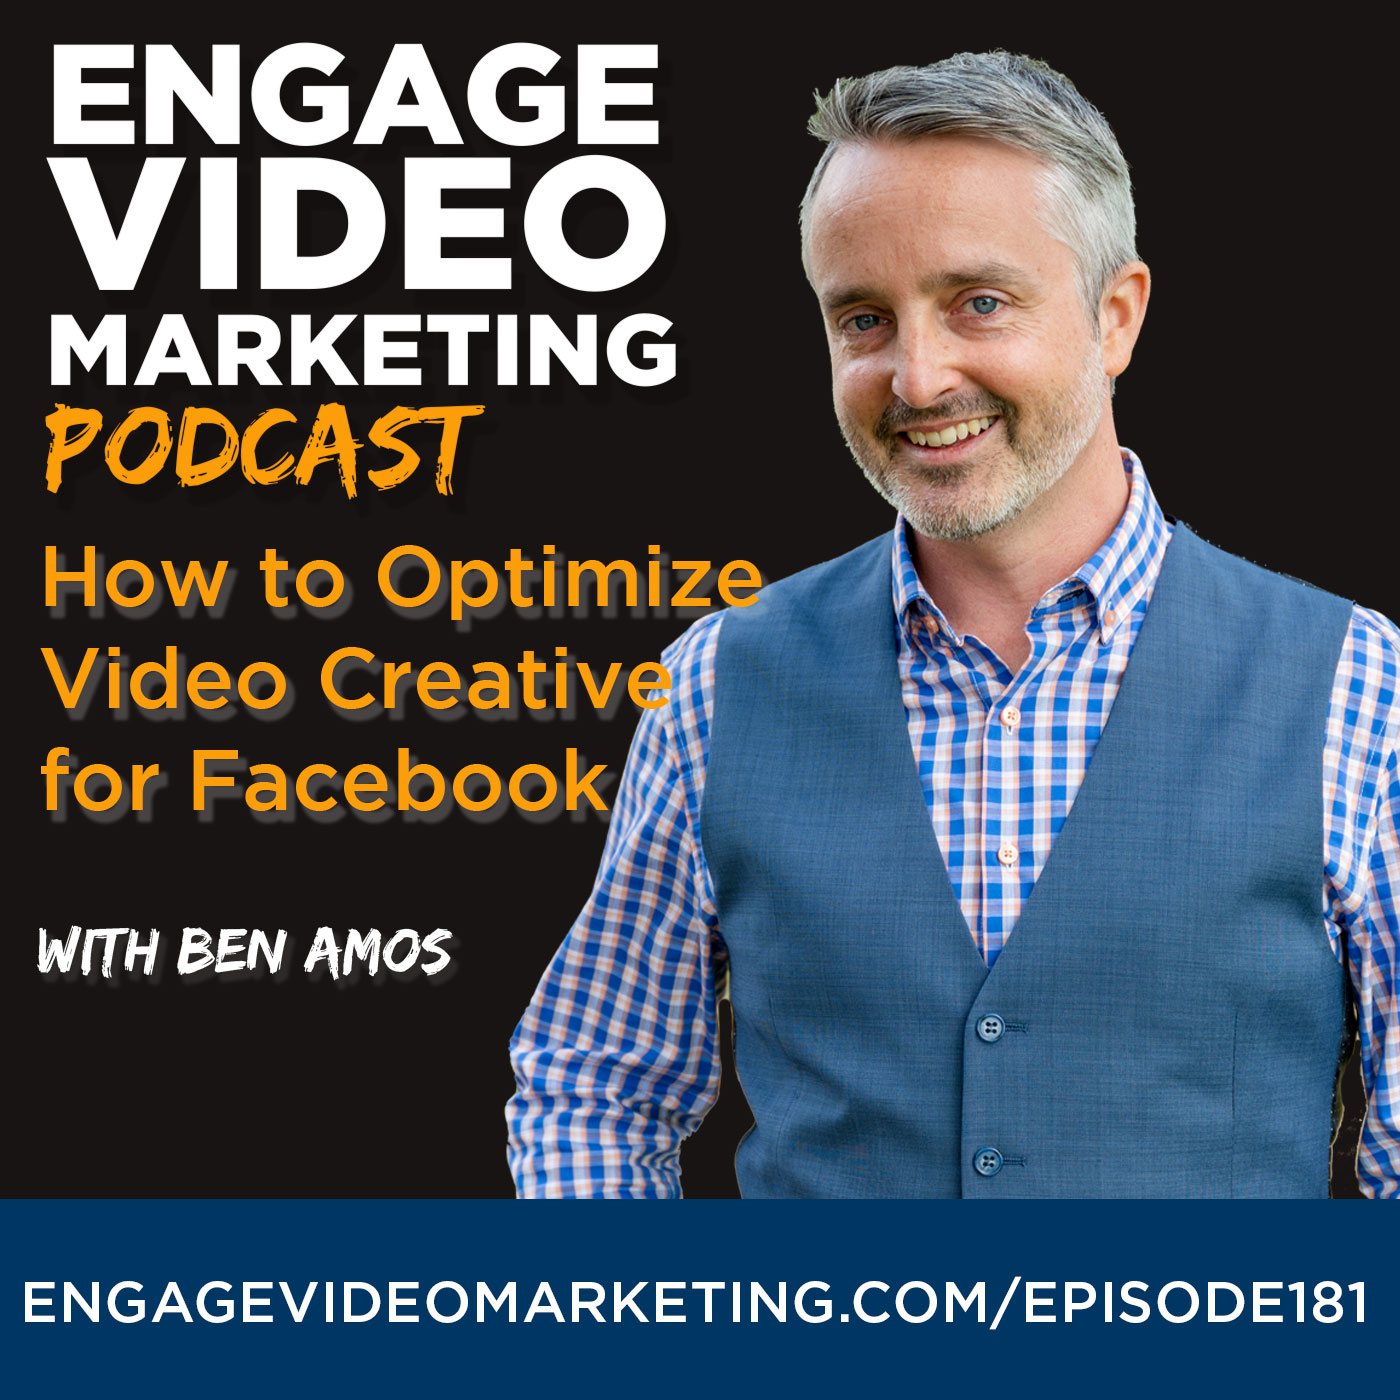 How to Optimize Video Creative for Facebook